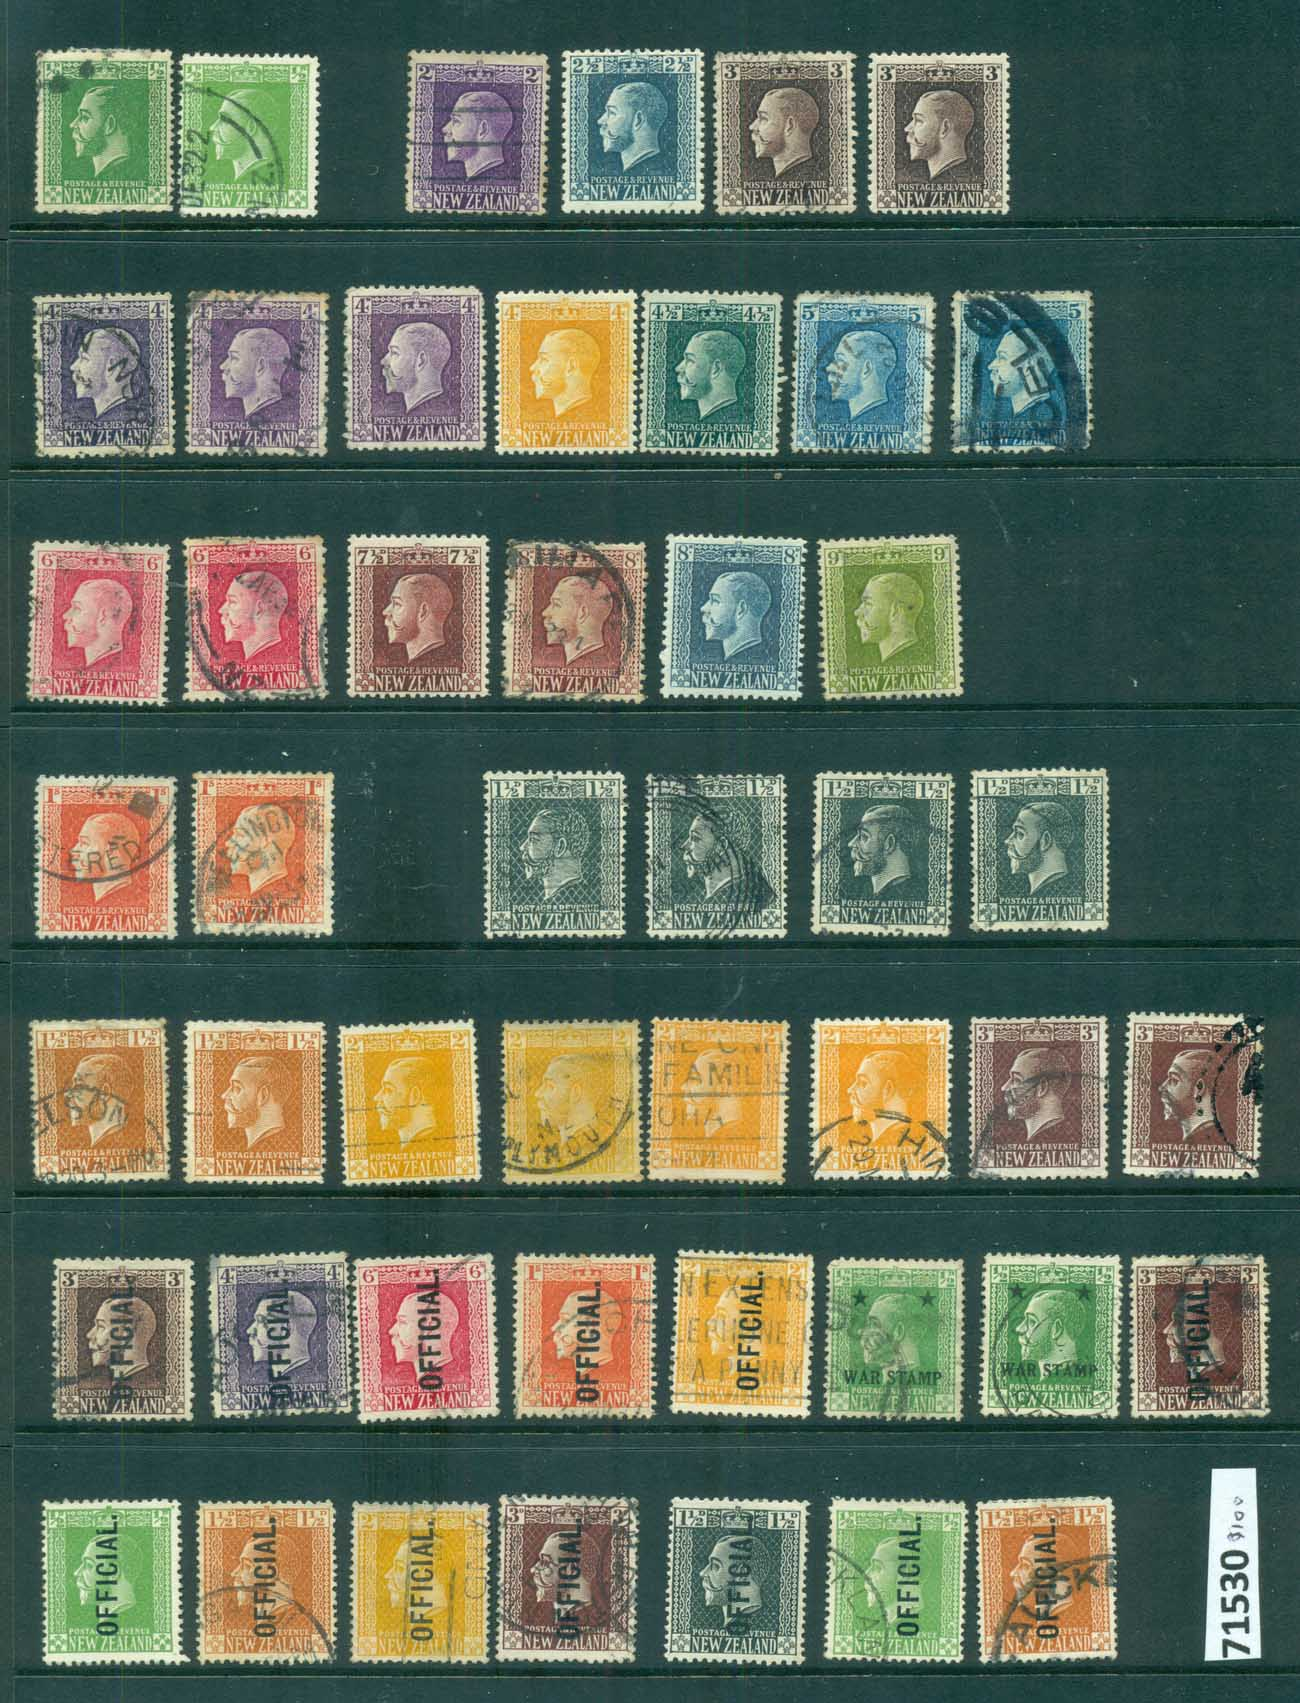 New Zealand 1915 on KGV Assorted oddments (faults) FU lot71530